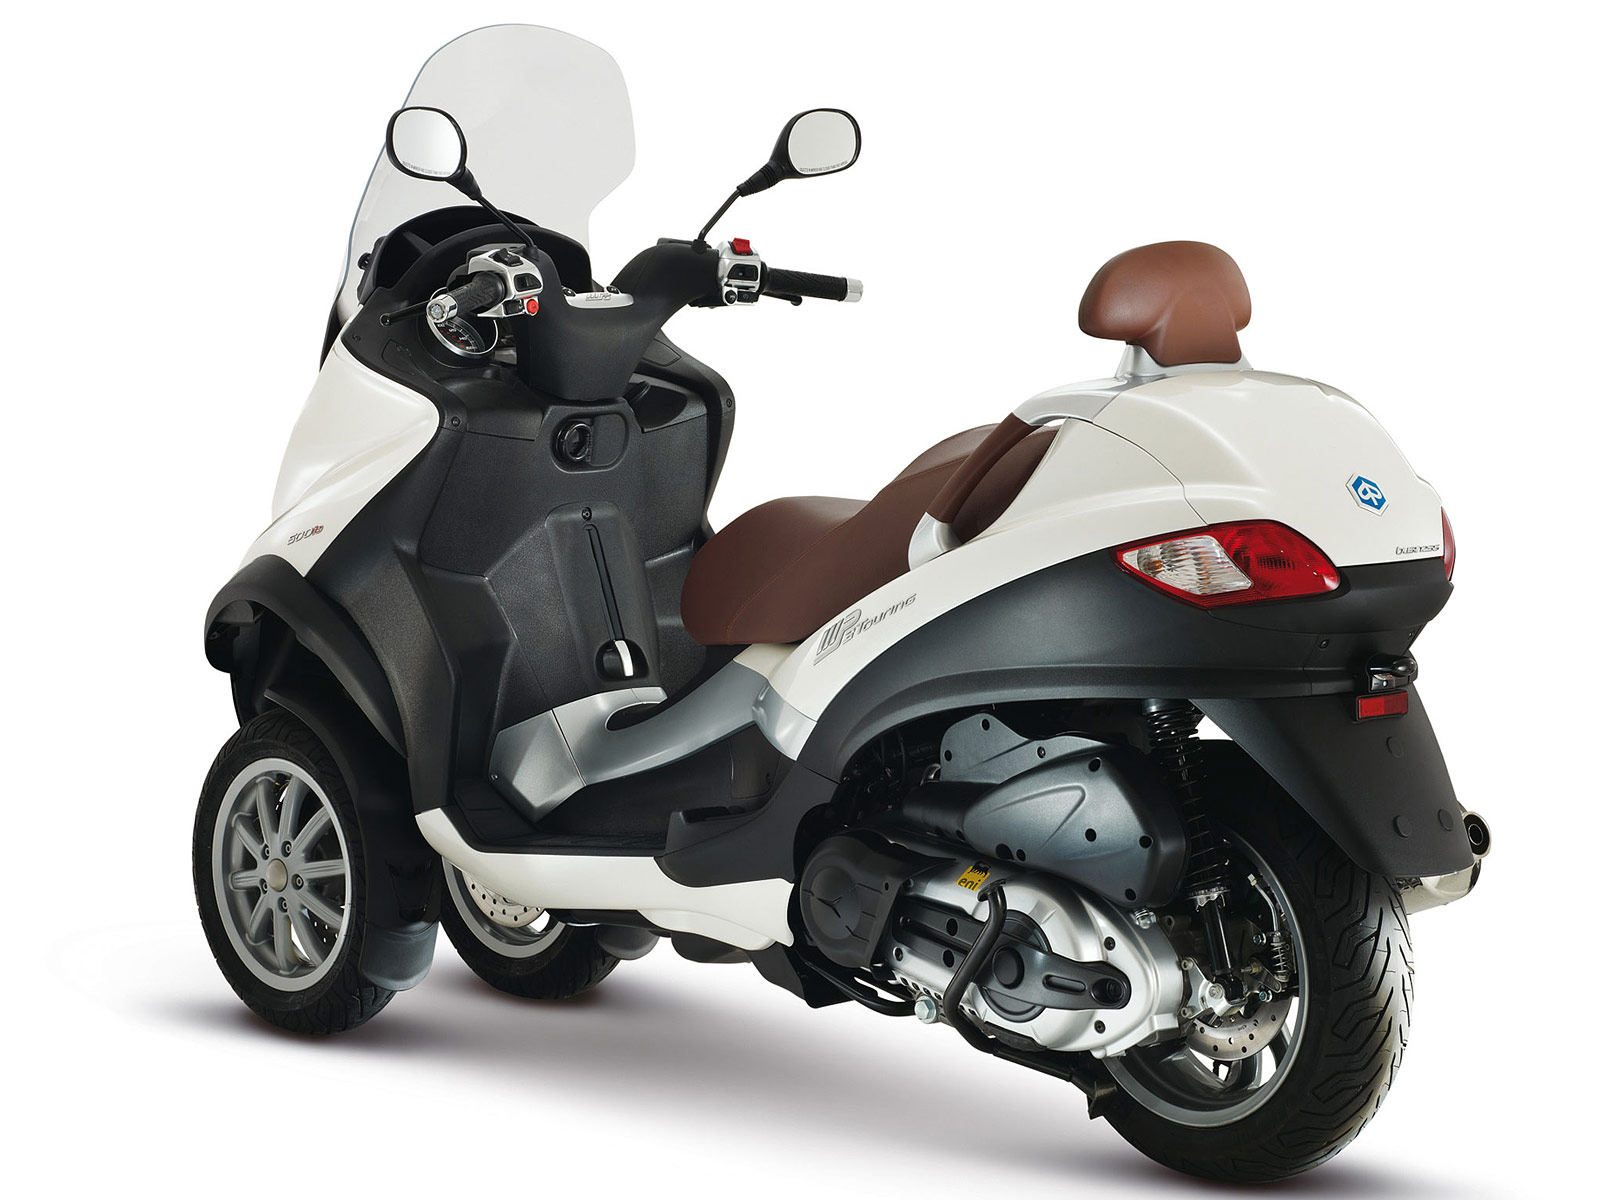 2012 Piaggio Mp3 Touring 500IE Business Insurance Information